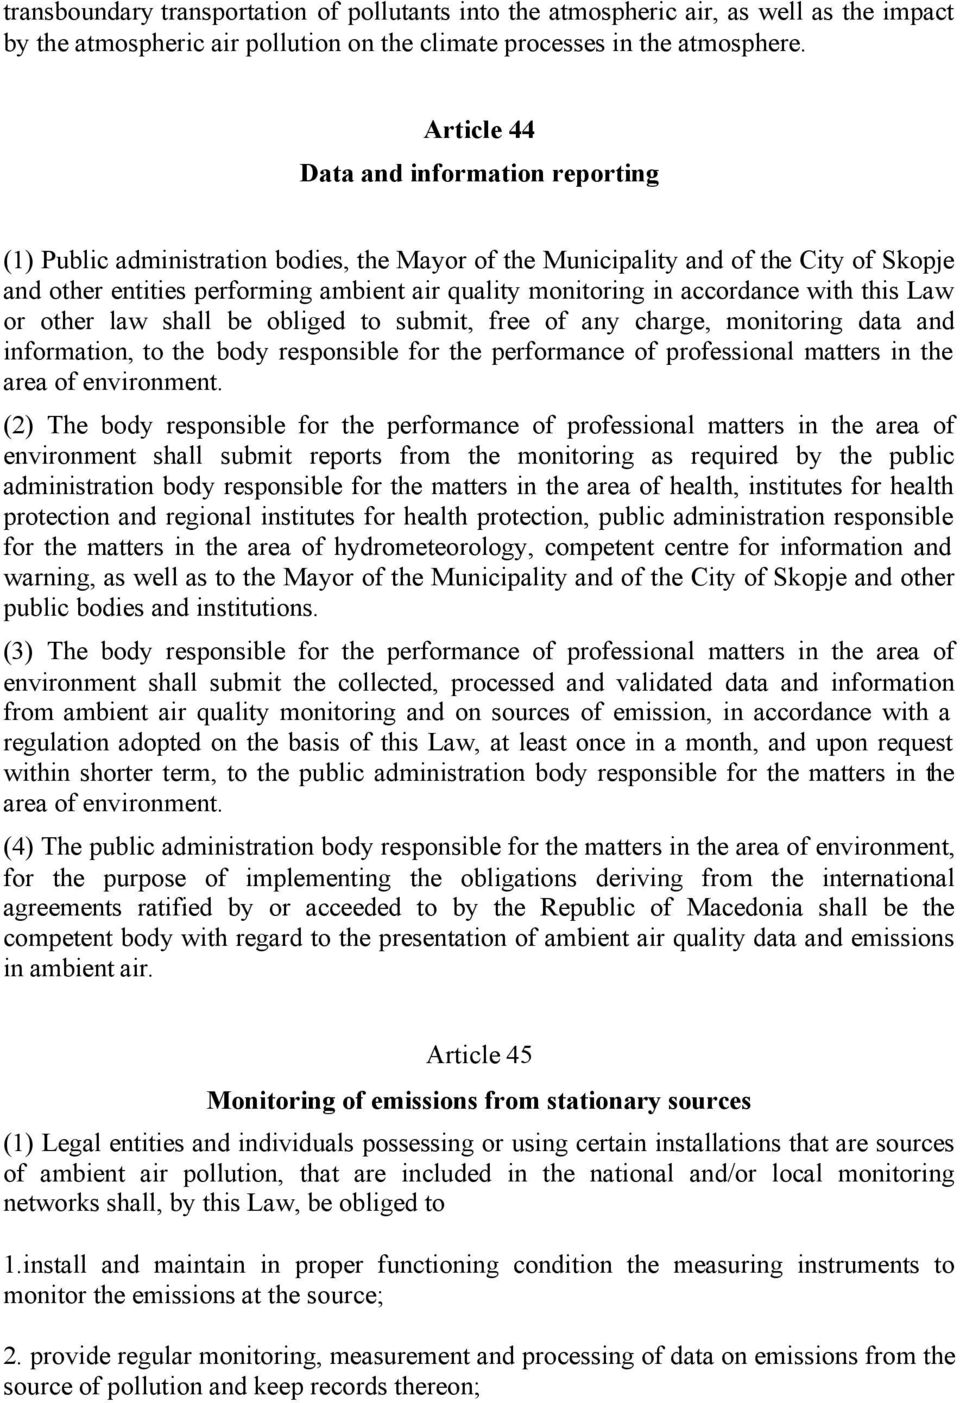 accordance with this Law or other law shall be obliged to submit, free of any charge, monitoring data and information, to the body responsible for the performance of professional matters in the area